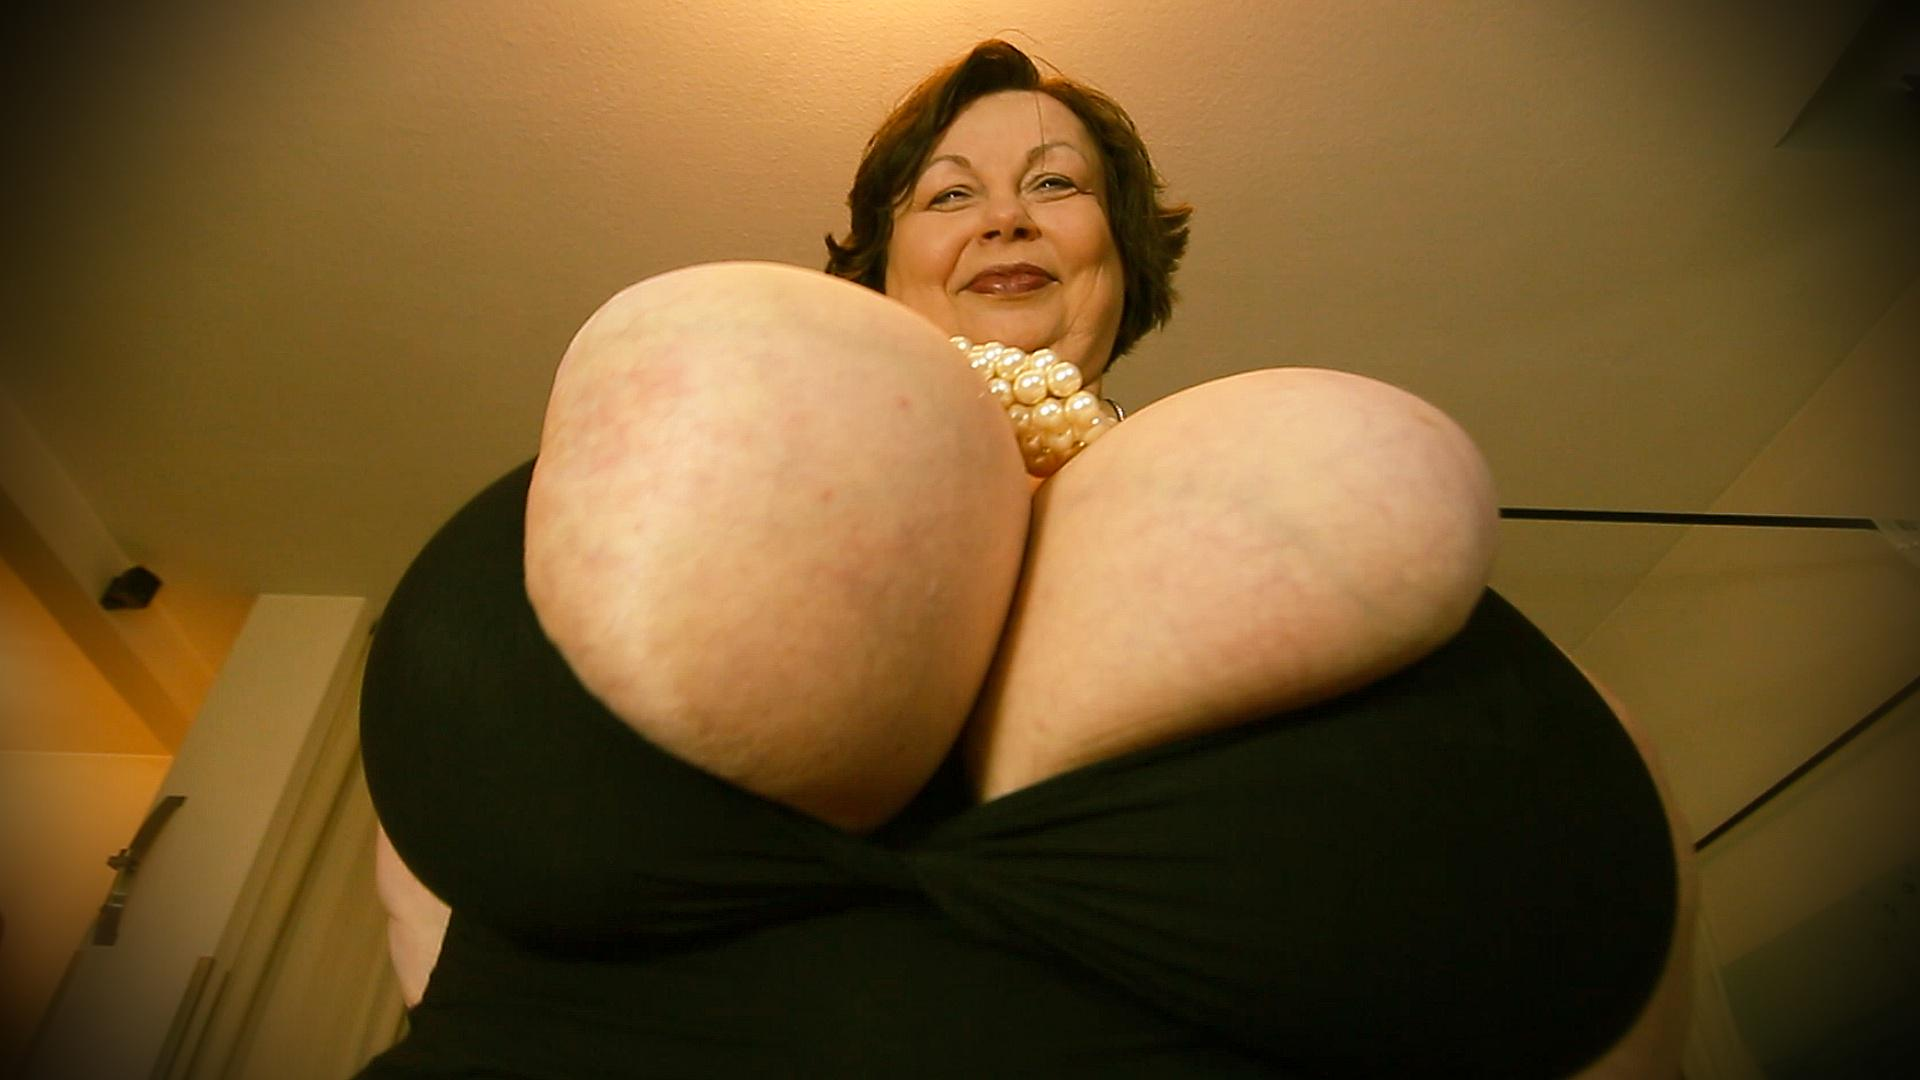 Maja Magic On Twitter -5761